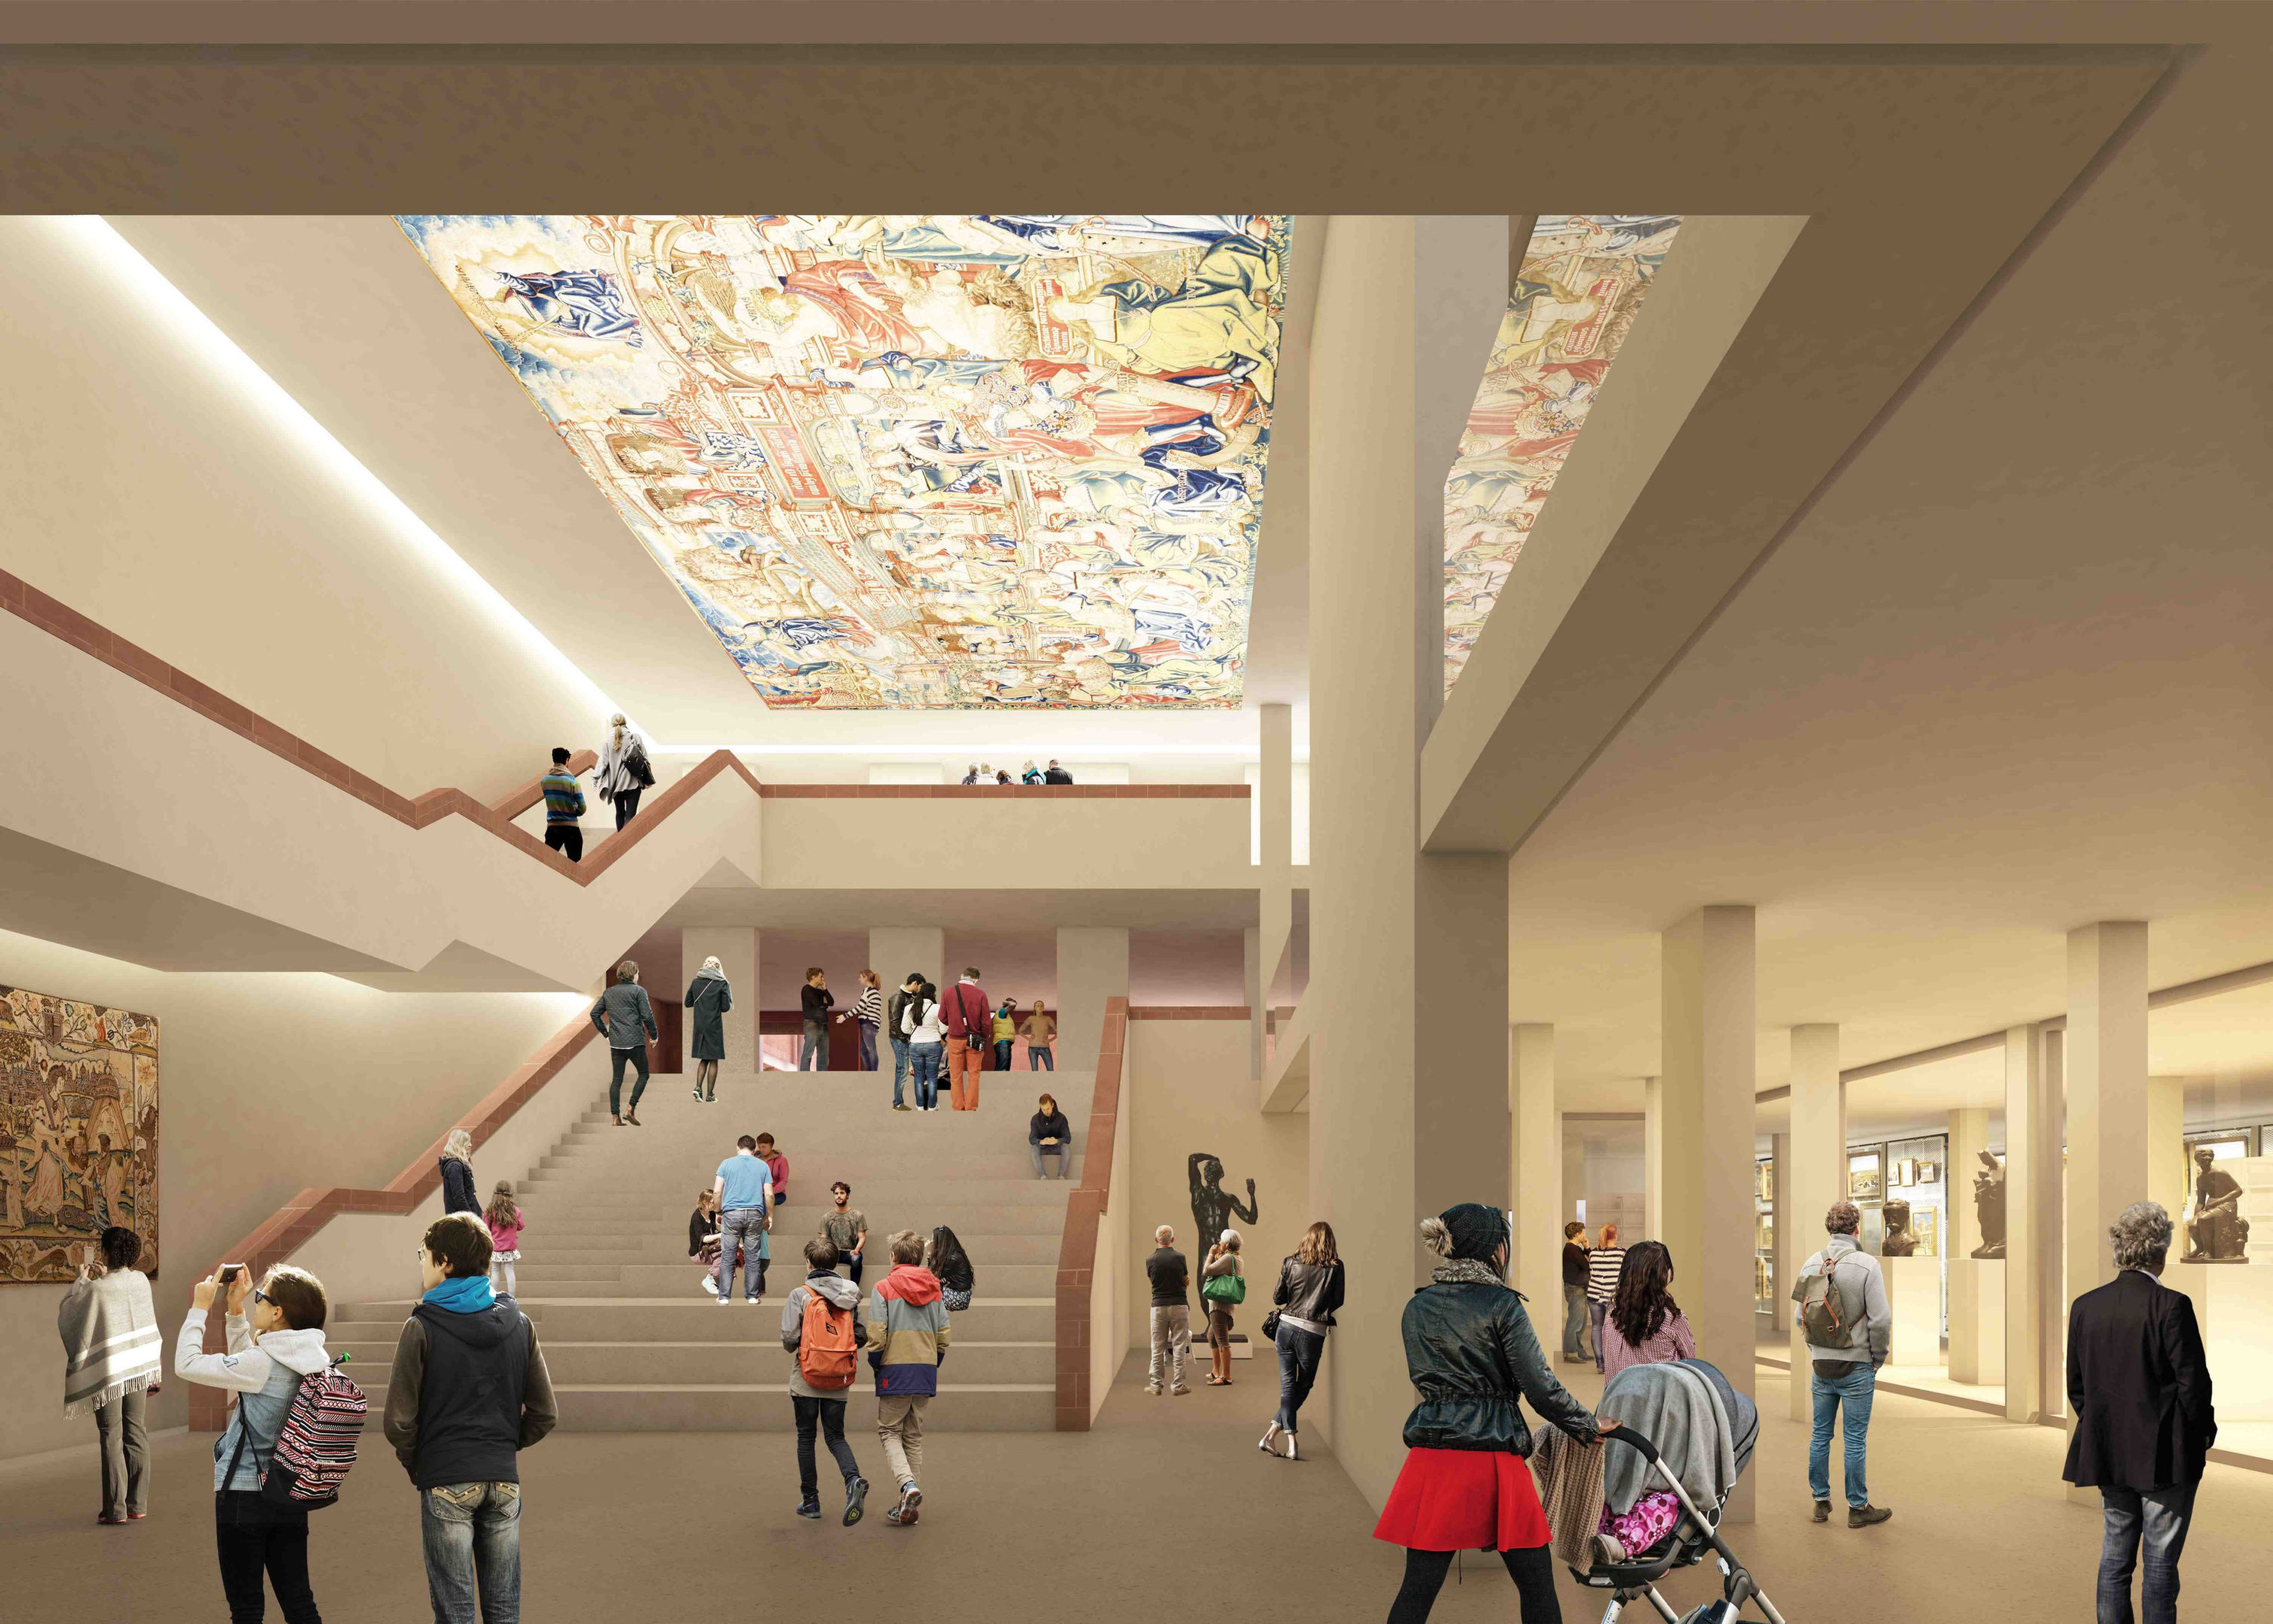 Artist's impression of the Burrell Collection by John McAslan + Partners, as the museum which houses almost 9,000 artworks collected by shipping merchant Sir William Burrell won planning approval for a £66 million refurbishments (John McAslan + Partners/PA Wire)